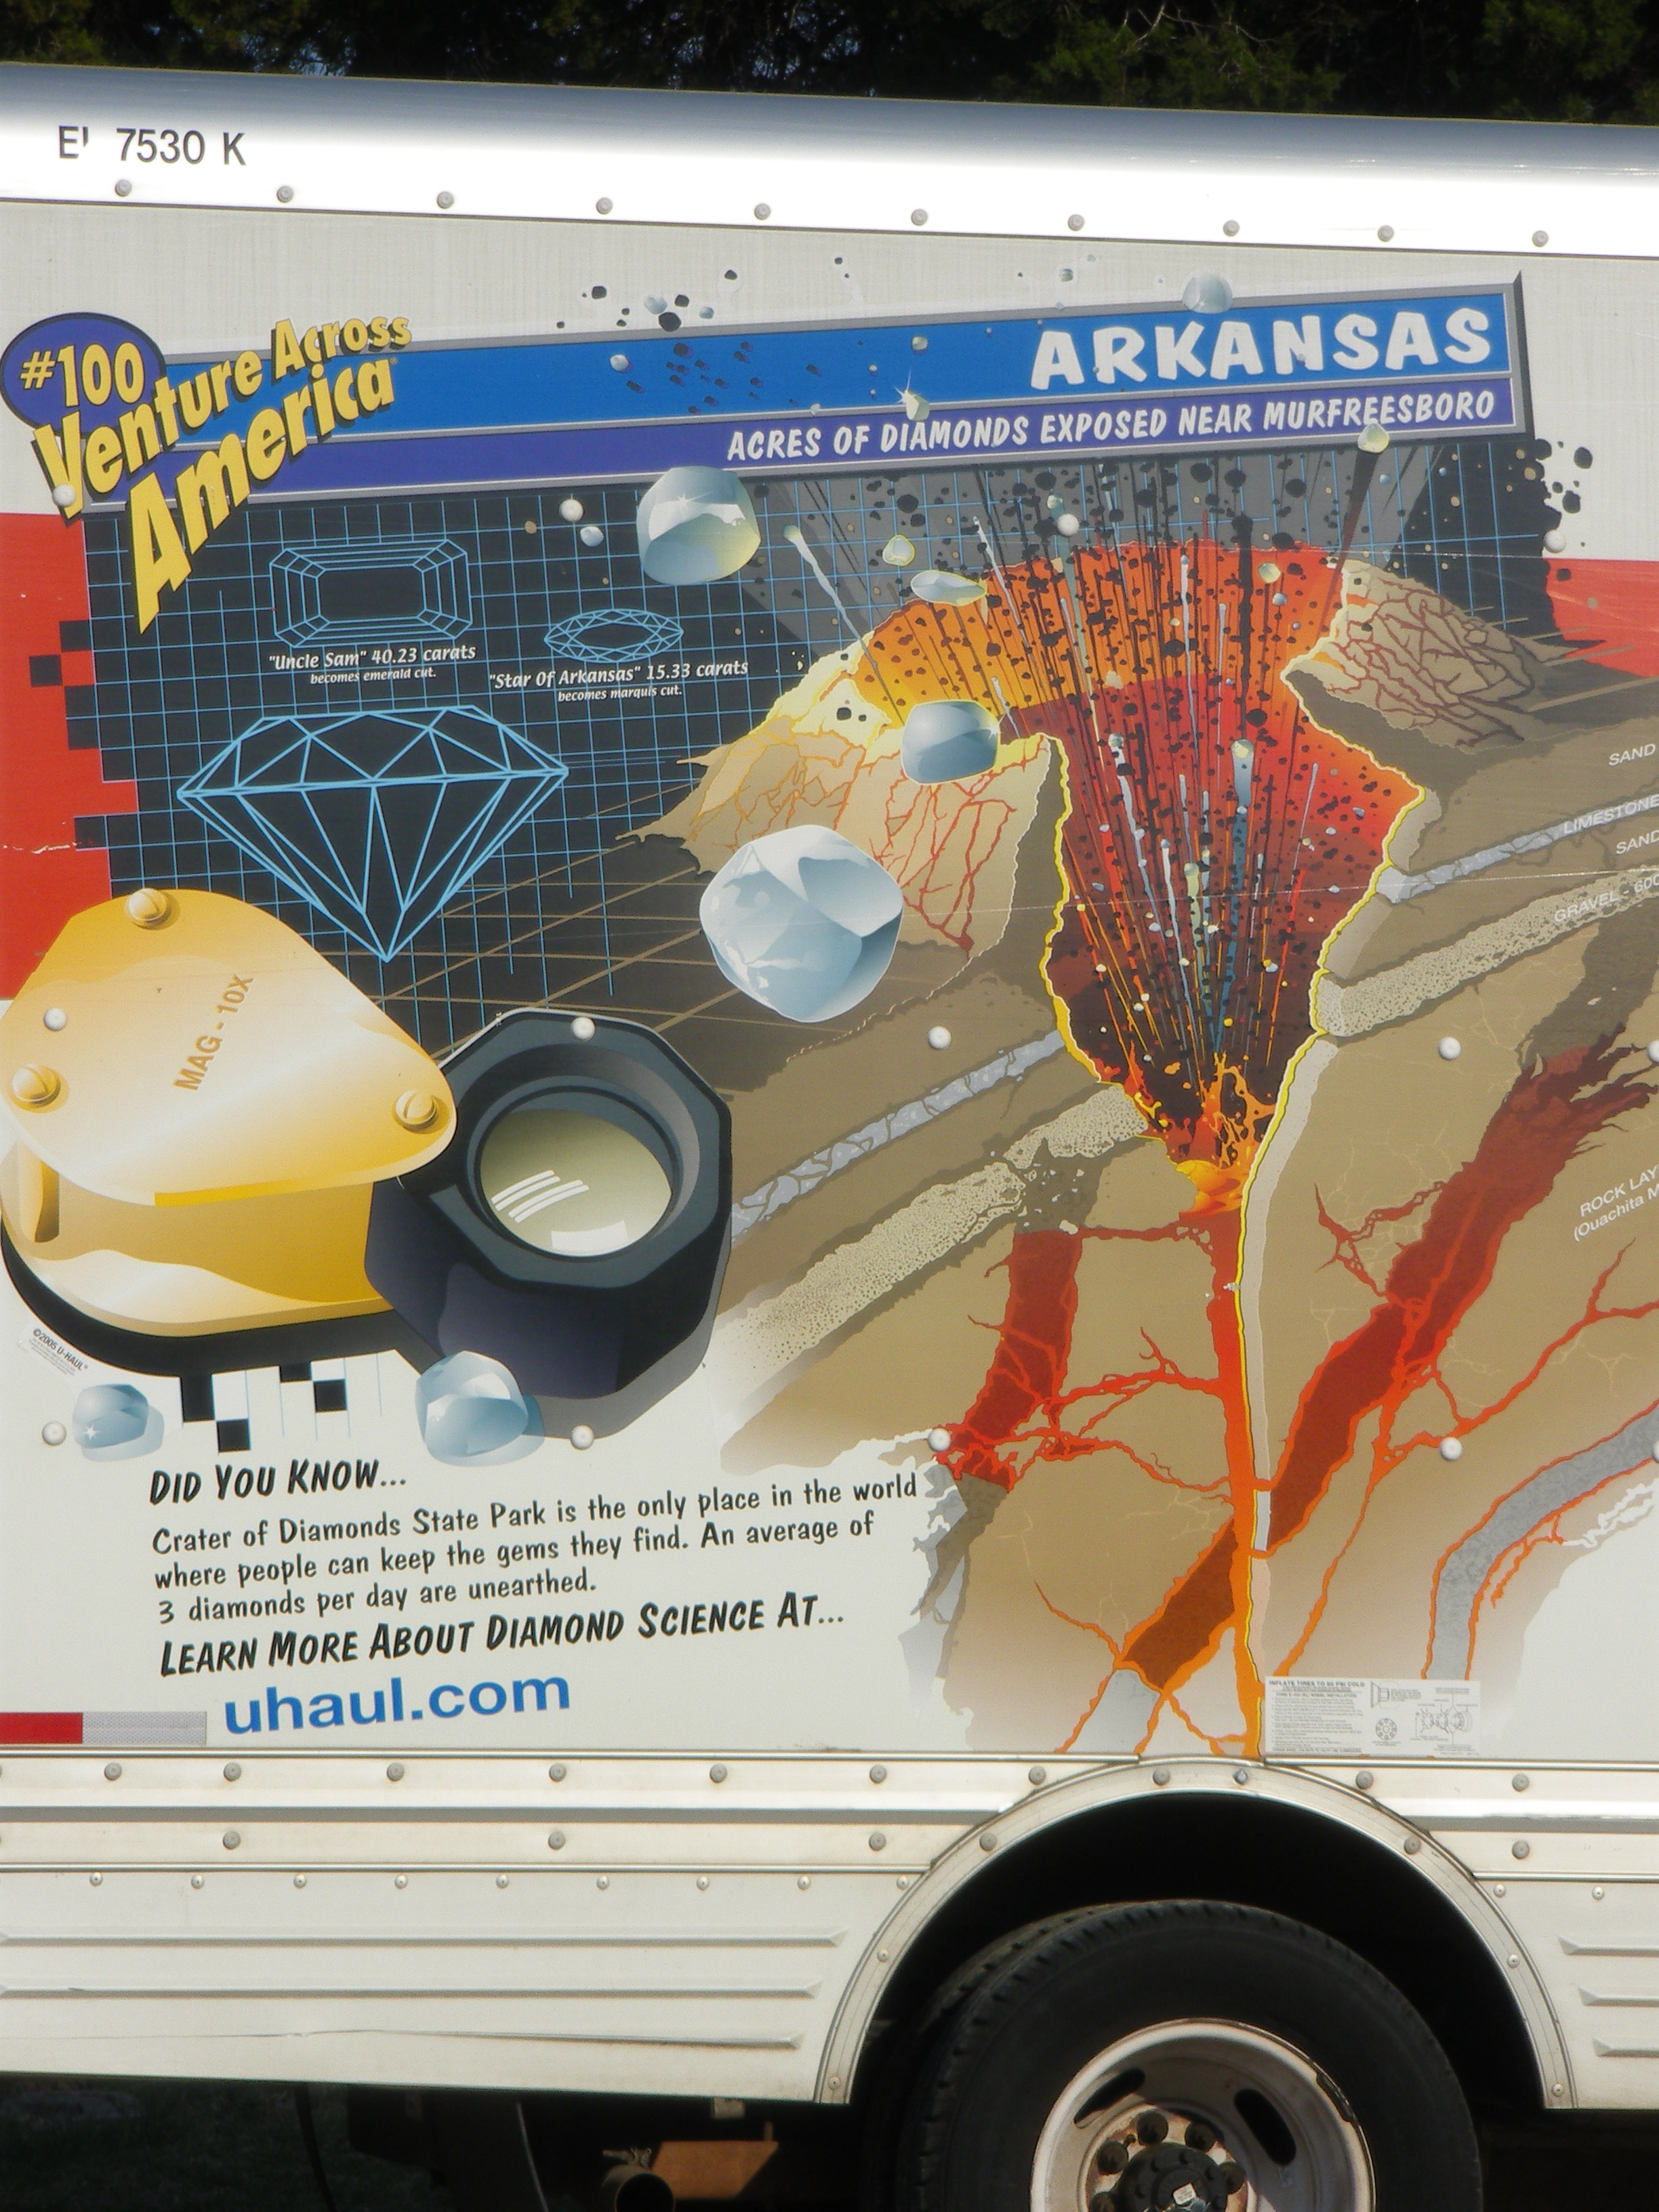 Detail:  U-Haul truck features a graphic description of the geology and information about Arkansas's Crater of Diamonds State Park.